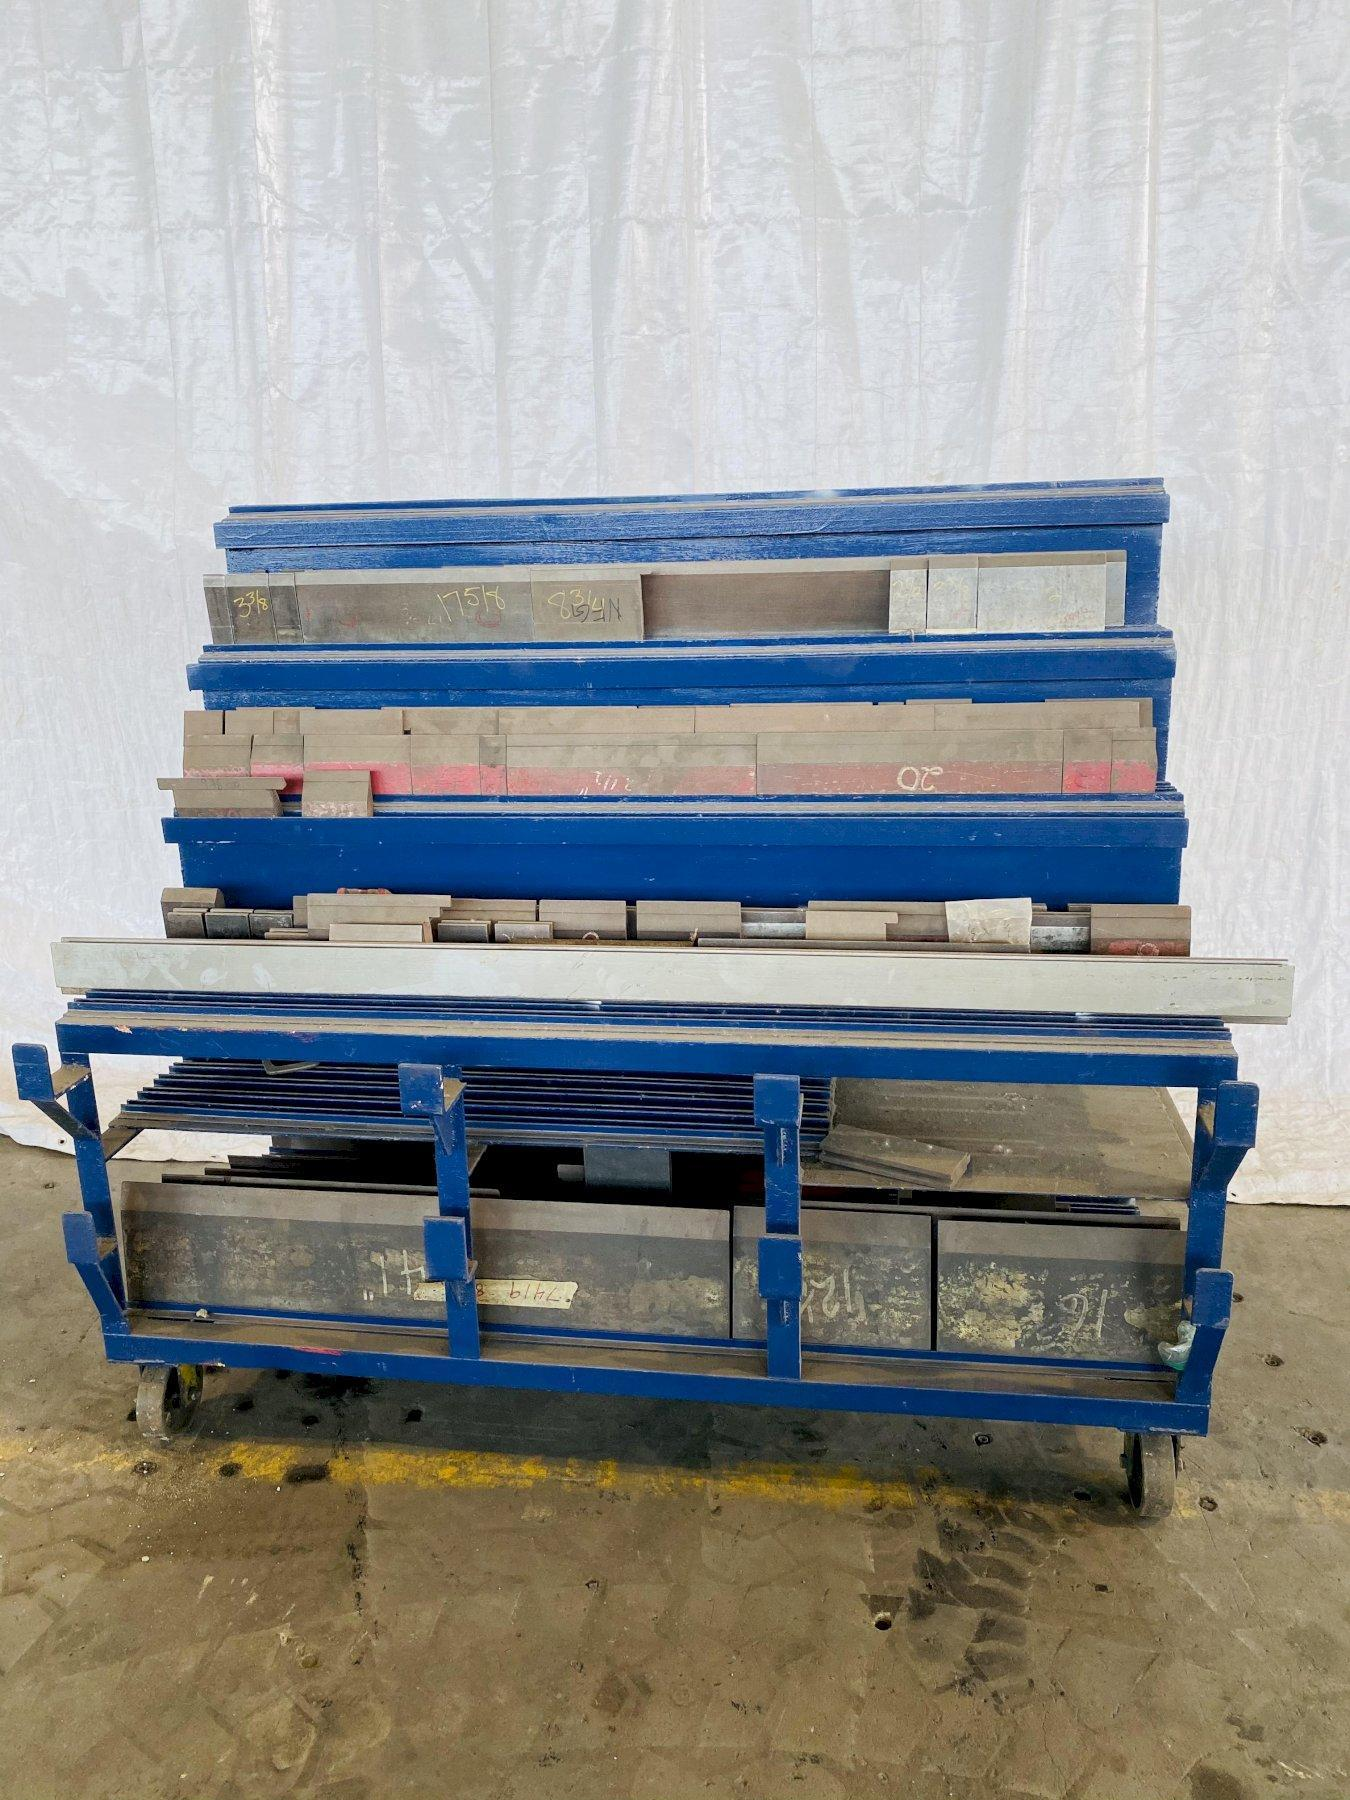 PRESS BRAKE TOOLING CART WITH VARIOUS TOOLING. STOCK # 0205821